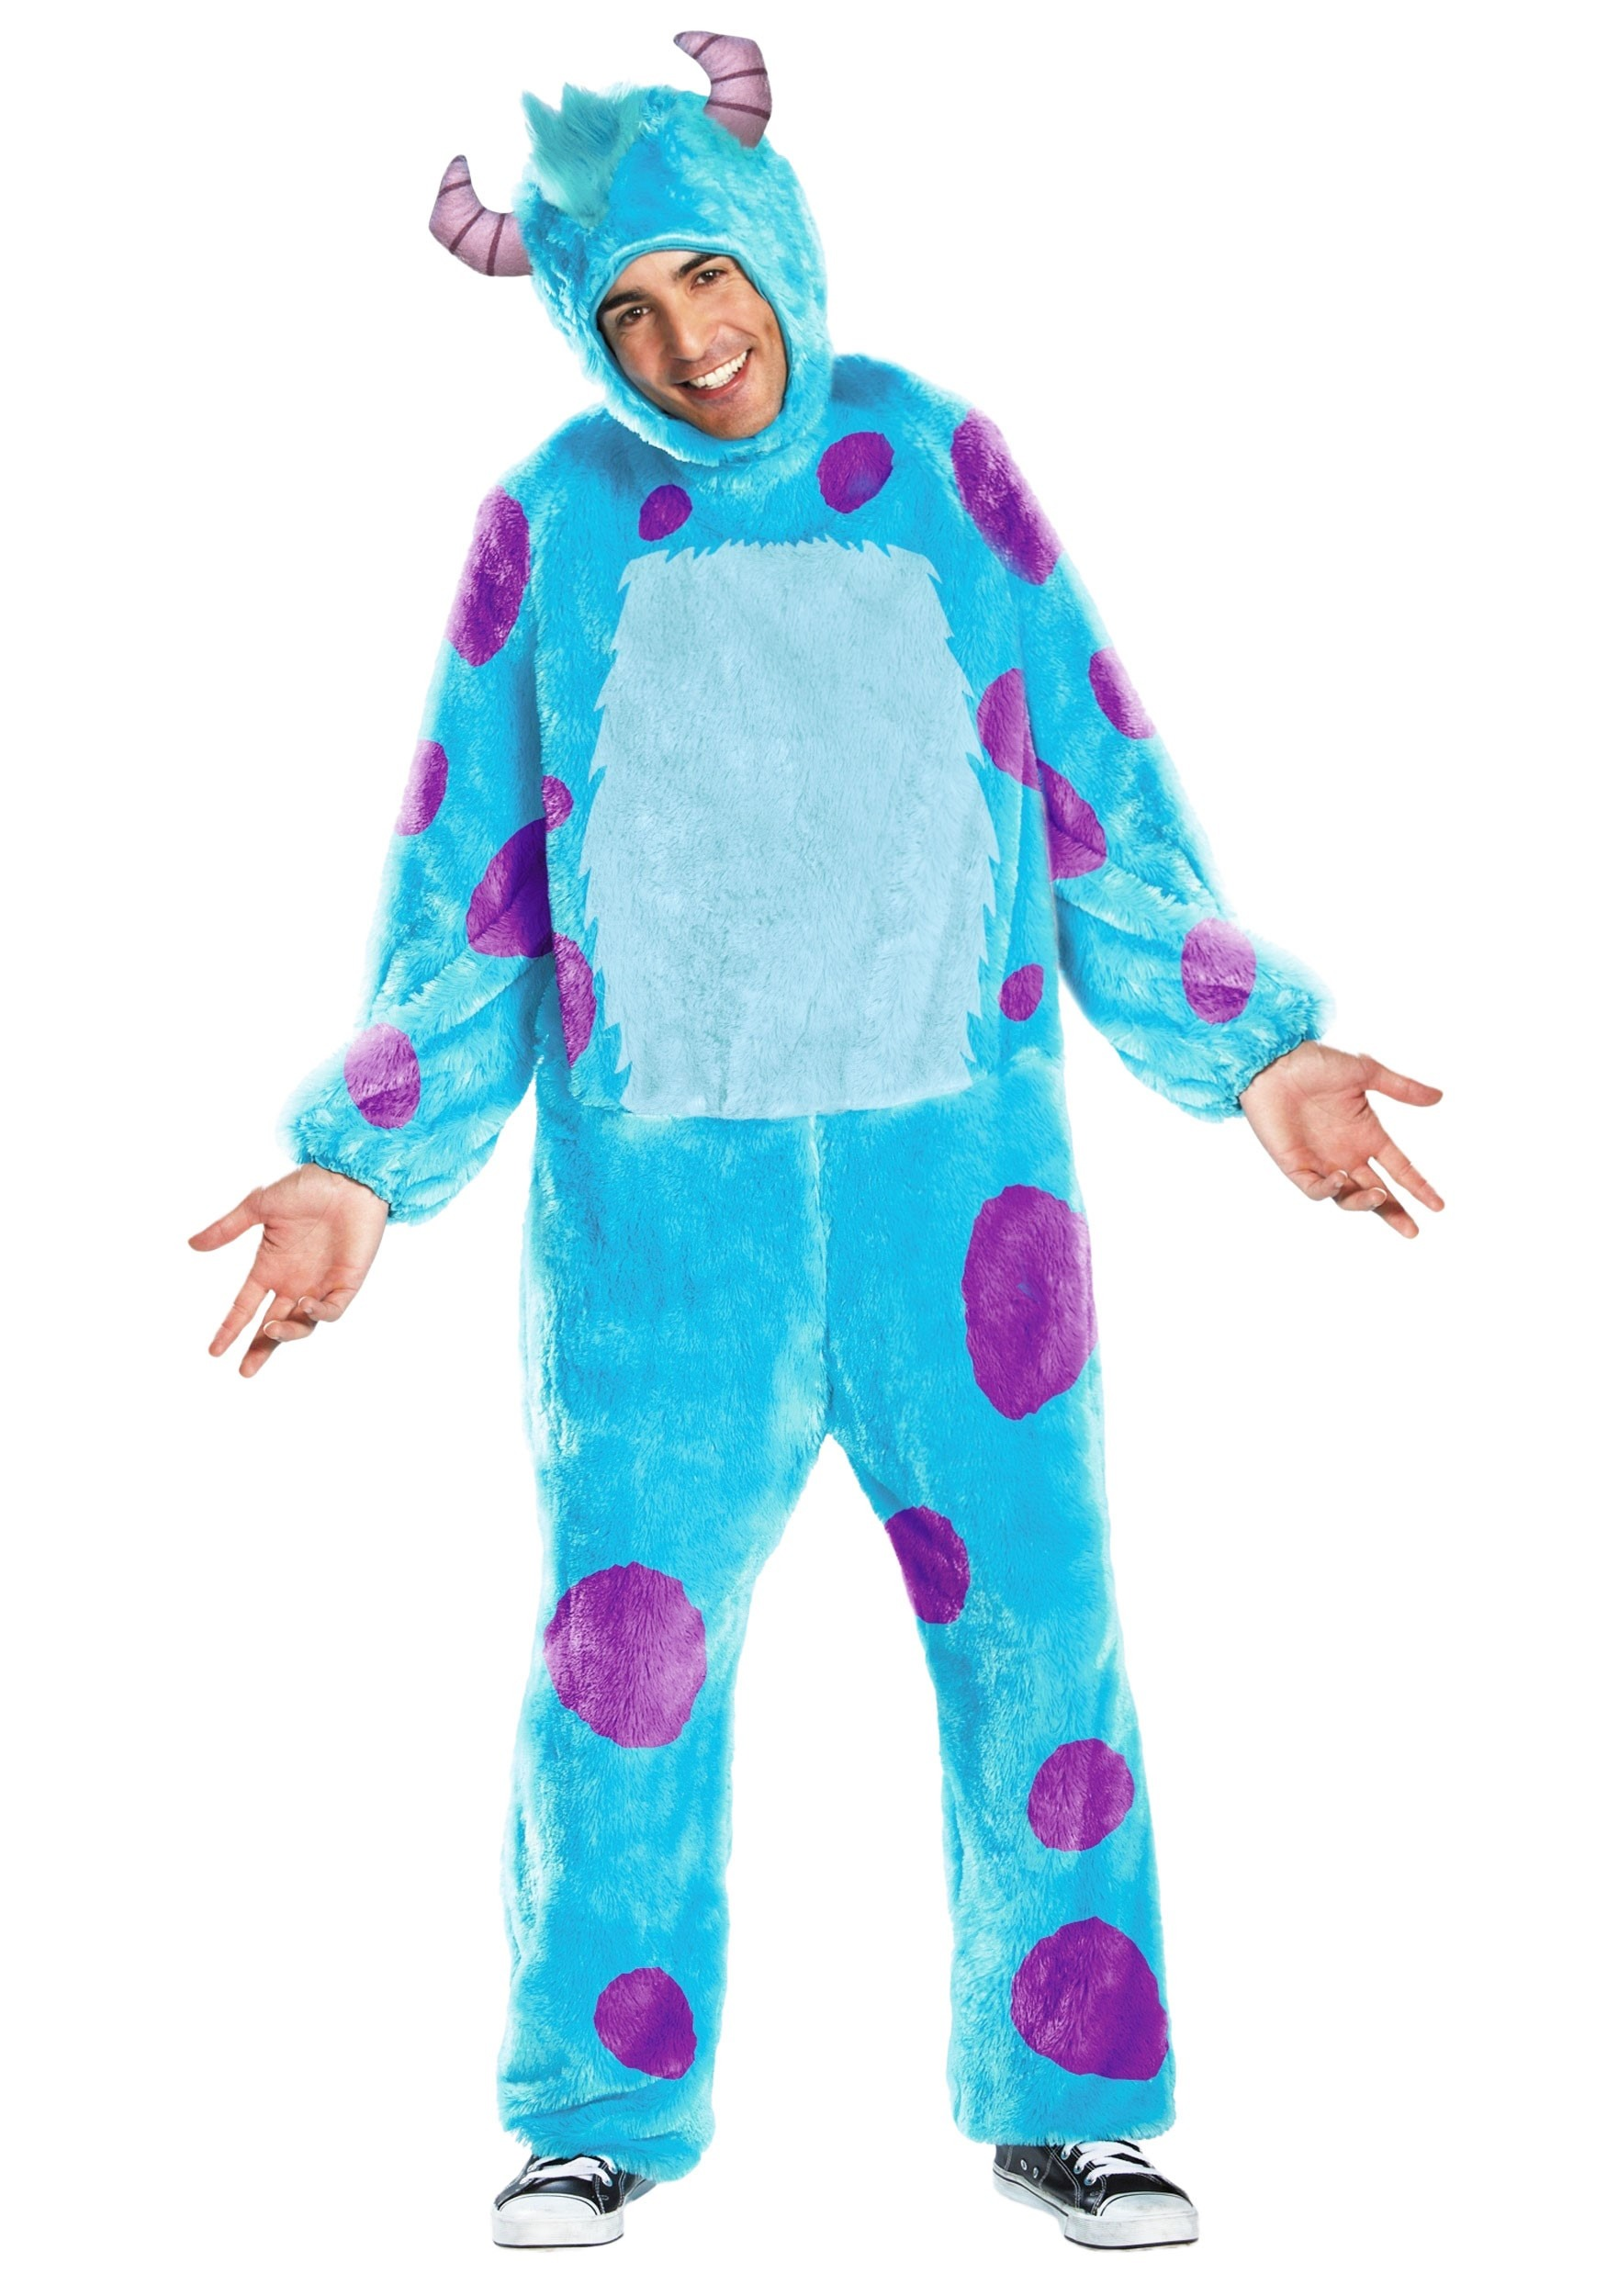 2b6456154d Monsters Inc Sulley Adult Costume